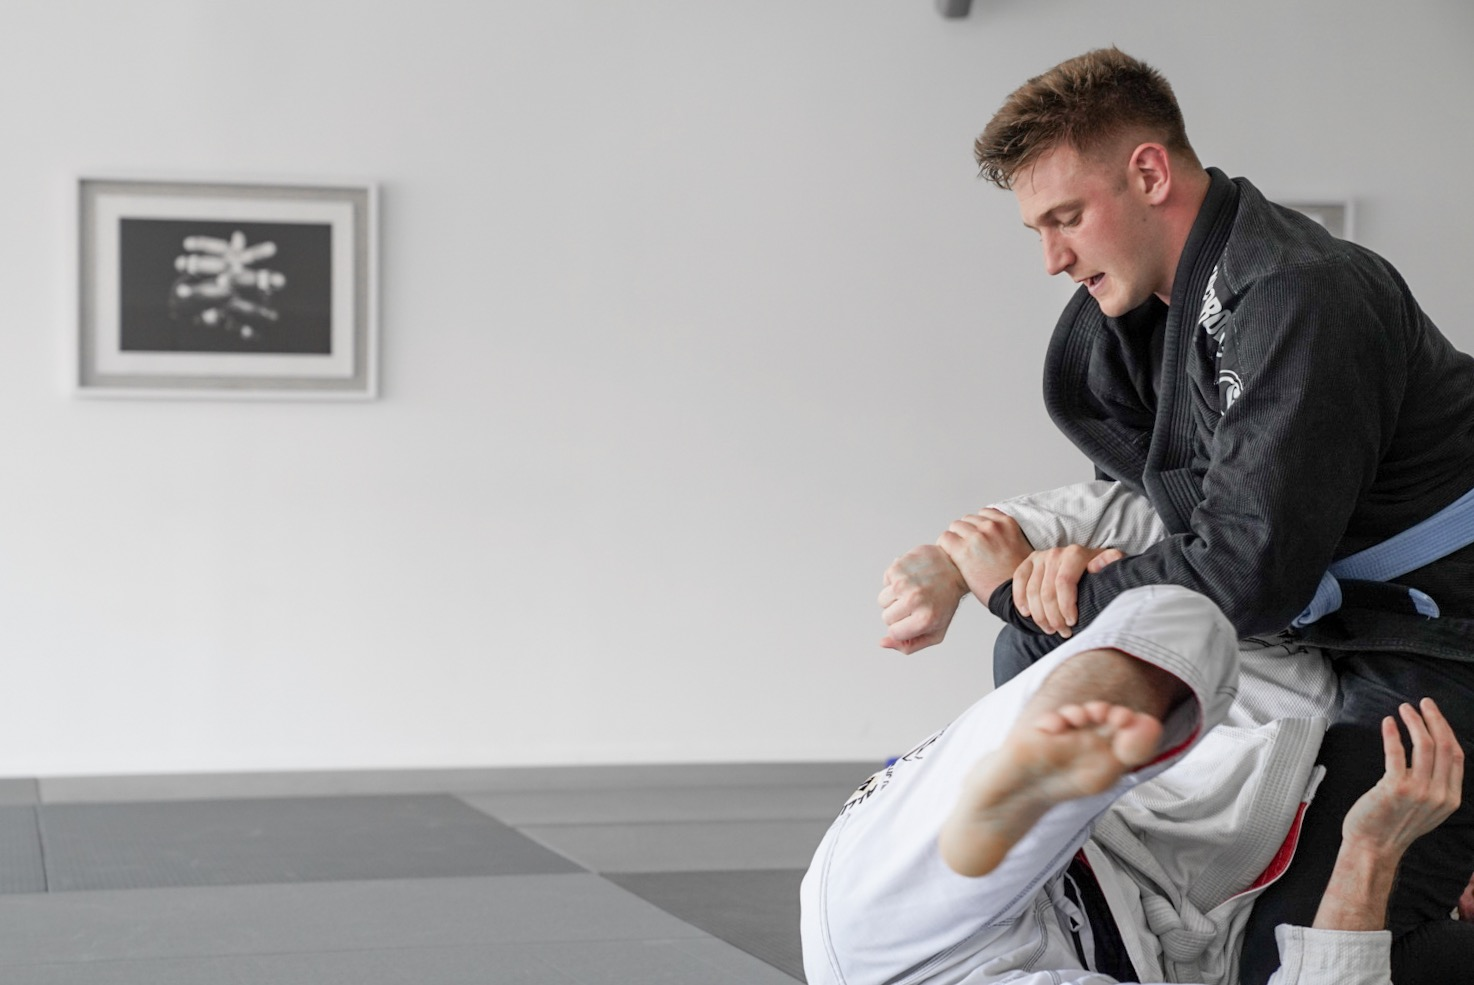 - ADVANCED - 3 STRIPES AND ABOVEOur Advanced program is designed for those with experience looking to expand their Jiu-Jitsu knowledge past the Fundamentals. In this class you will learn the more intricate techniques of Jiu-Jitsu along with competition style training.